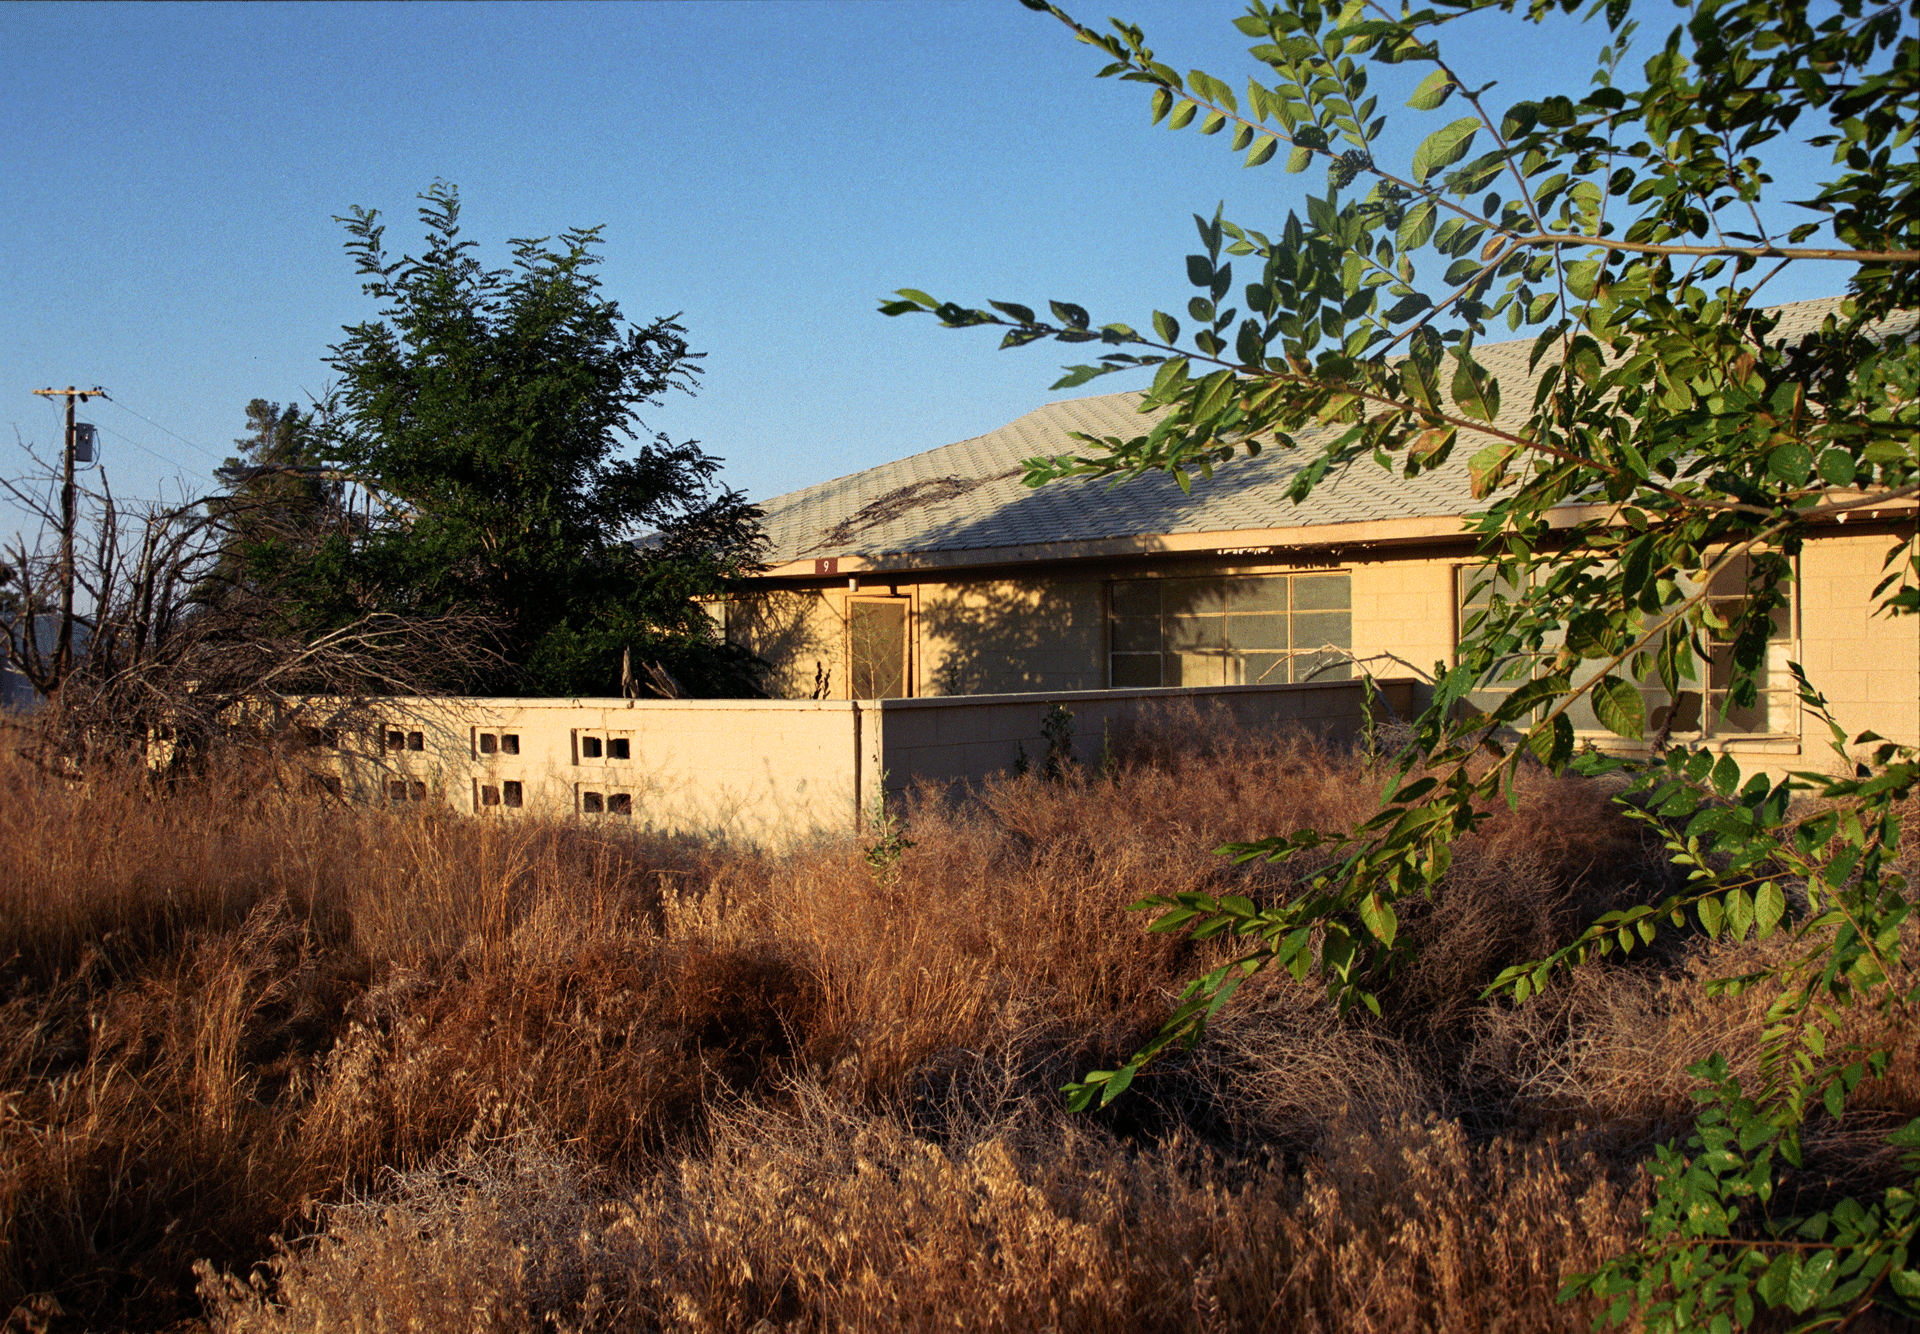 "Decommissioned (House with Garden). 2006/2011. C-Print, 10x8""."